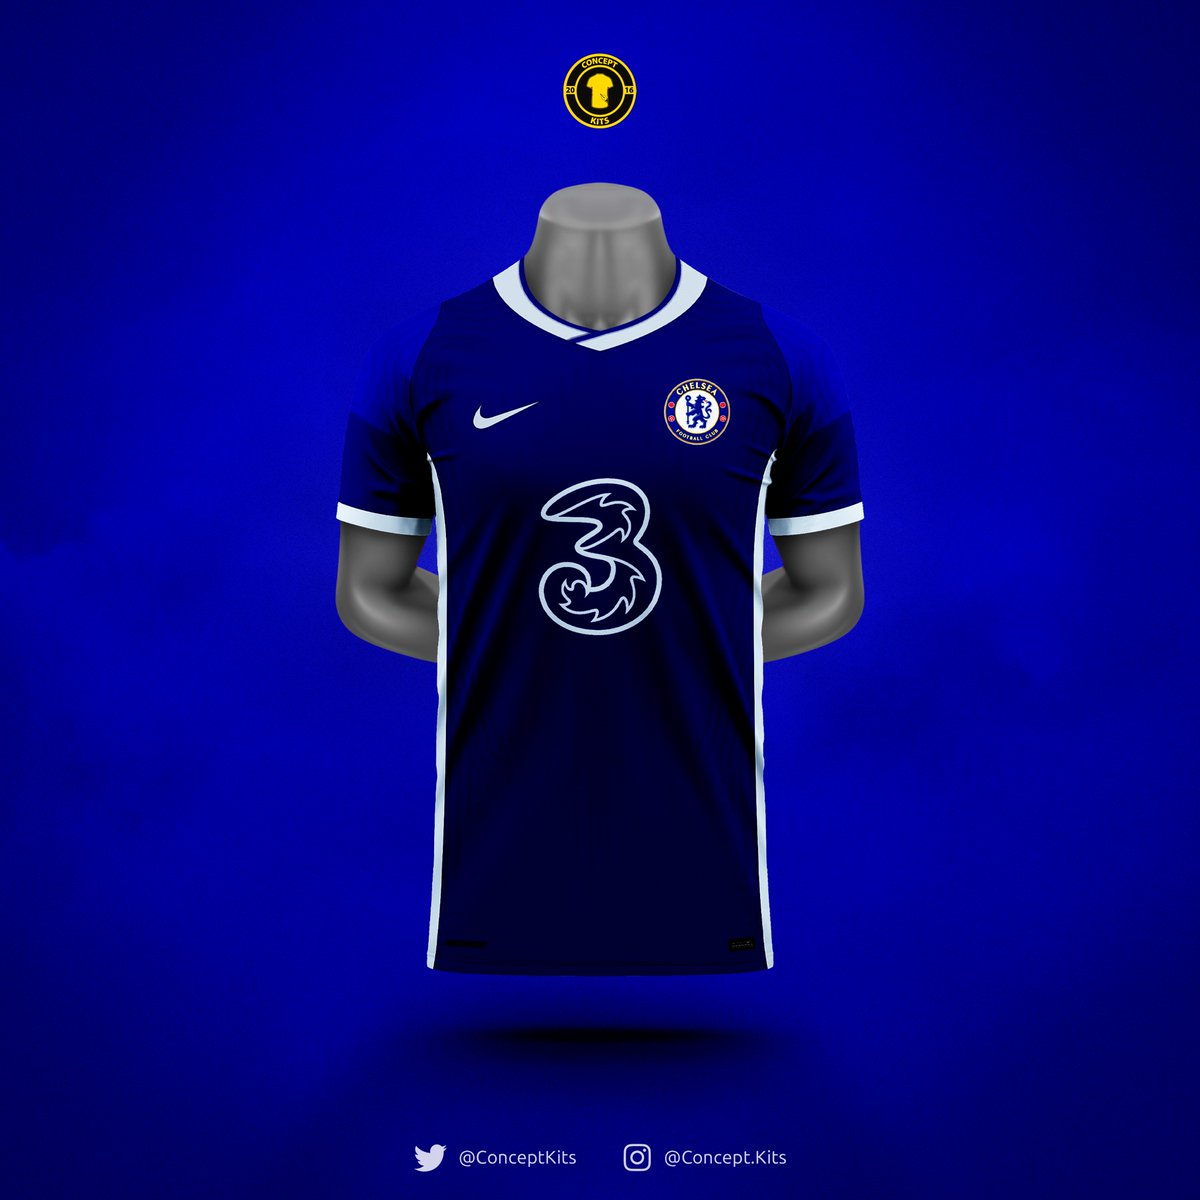 Concept Kits Conceptkits Twitter